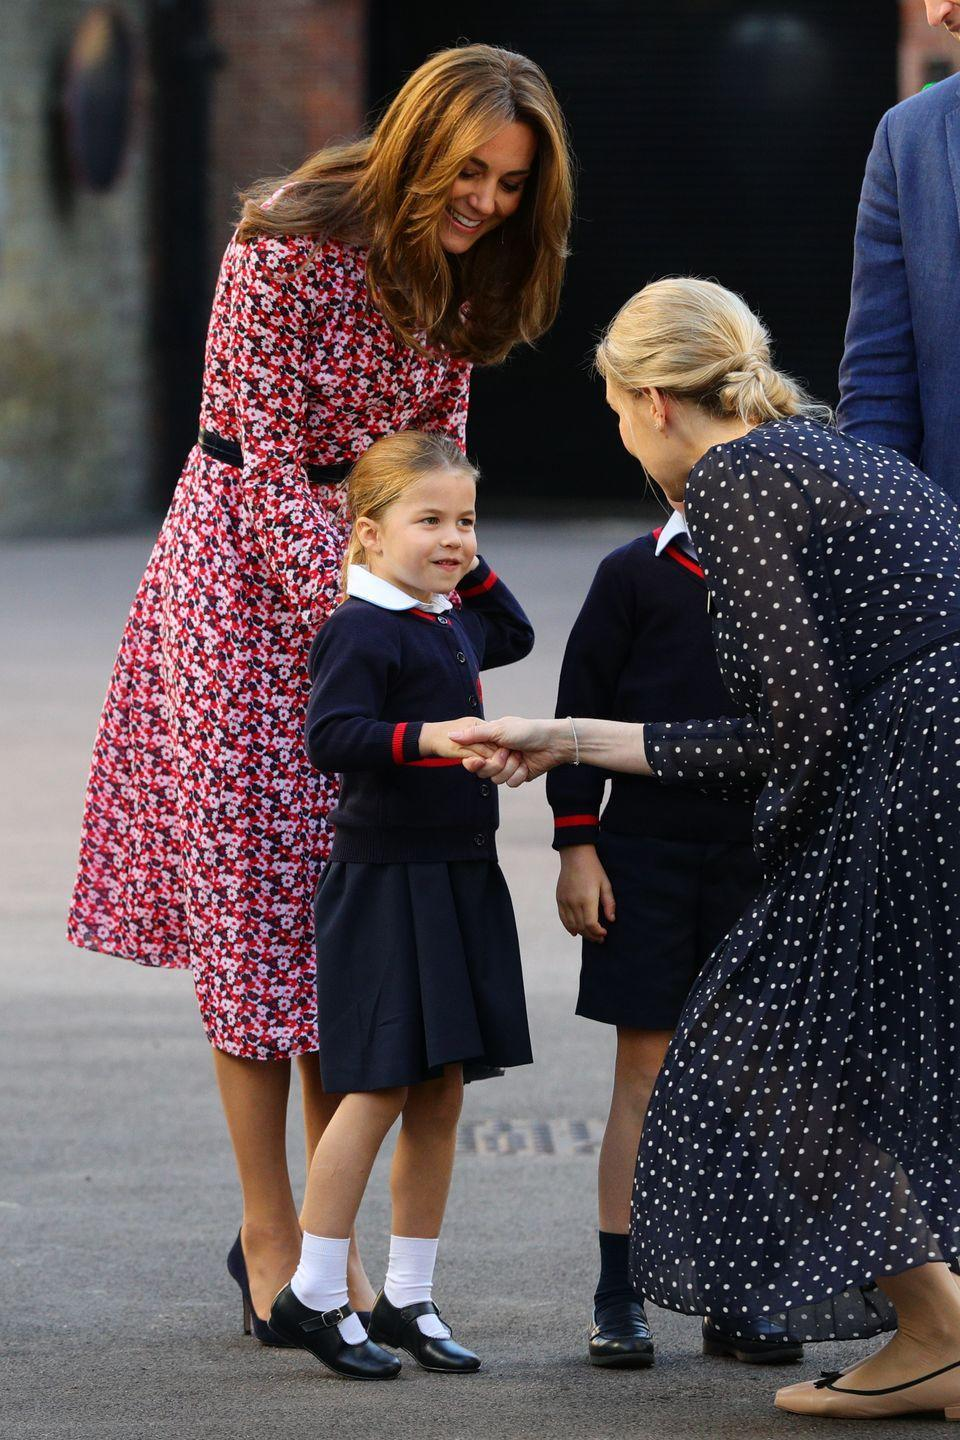 "<p>For Princess Charlotte's first day of school,<a href=""https://www.townandcountrymag.com/style/fashion-trends/a28901465/kate-middleton-pink-dress-princess-charlotte-first-day-of-school-photo/"" rel=""nofollow noopener"" target=""_blank"" data-ylk=""slk:the Duchess of Cambridge chose a lovely pink floral dress, which she paired with pointy toe pumps and a black, waist-defining belt"" class=""link rapid-noclick-resp""> the Duchess of Cambridge chose a lovely pink floral dress, which she paired with pointy toe pumps and a black, waist-defining belt</a>. </p>"